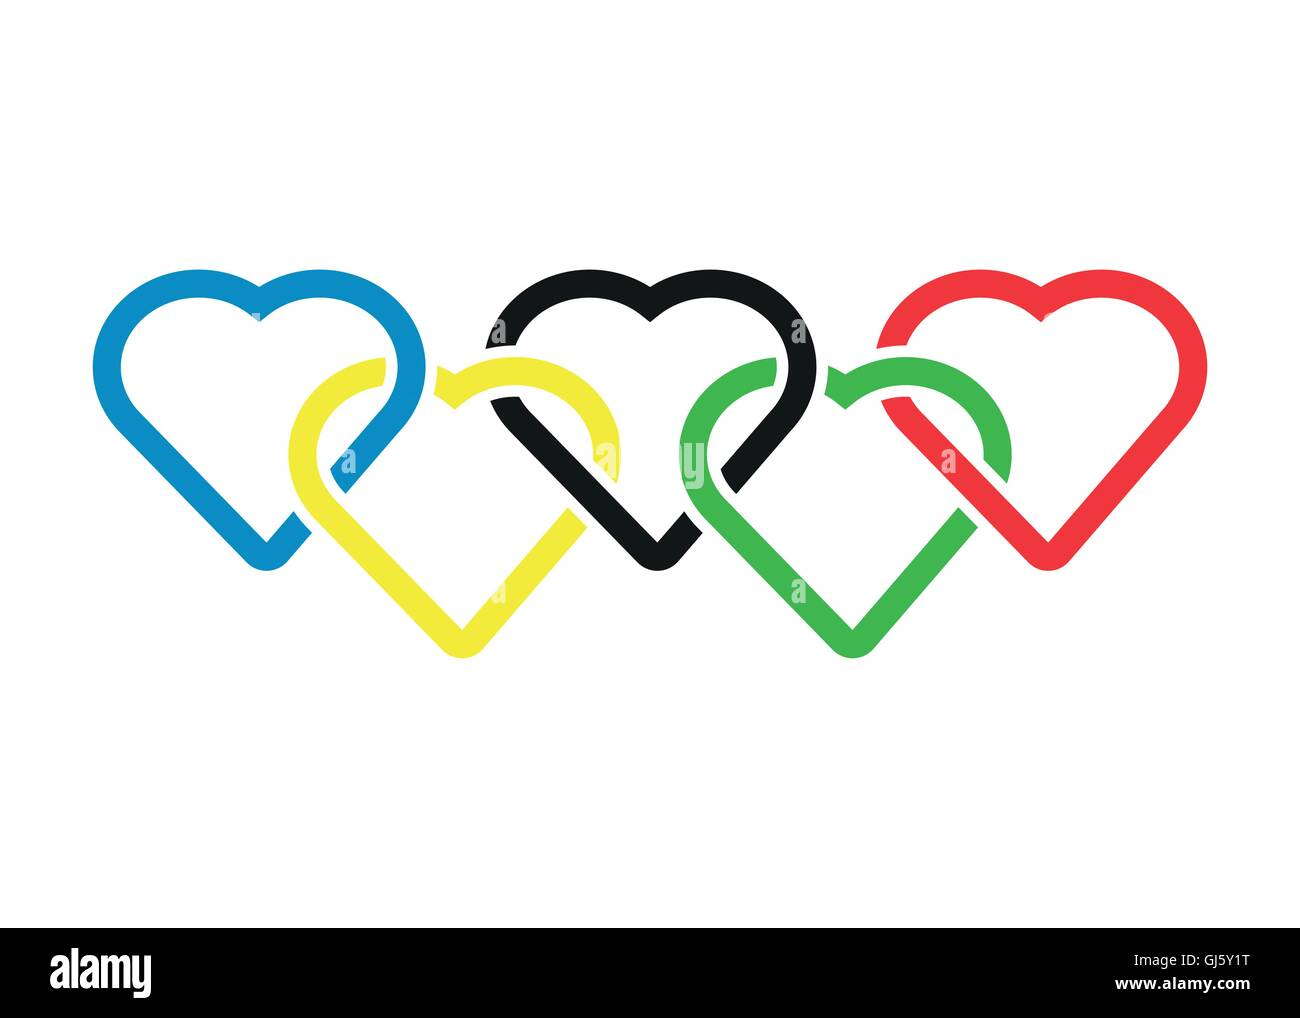 Vector heart shaped olympic rings - Stock Image